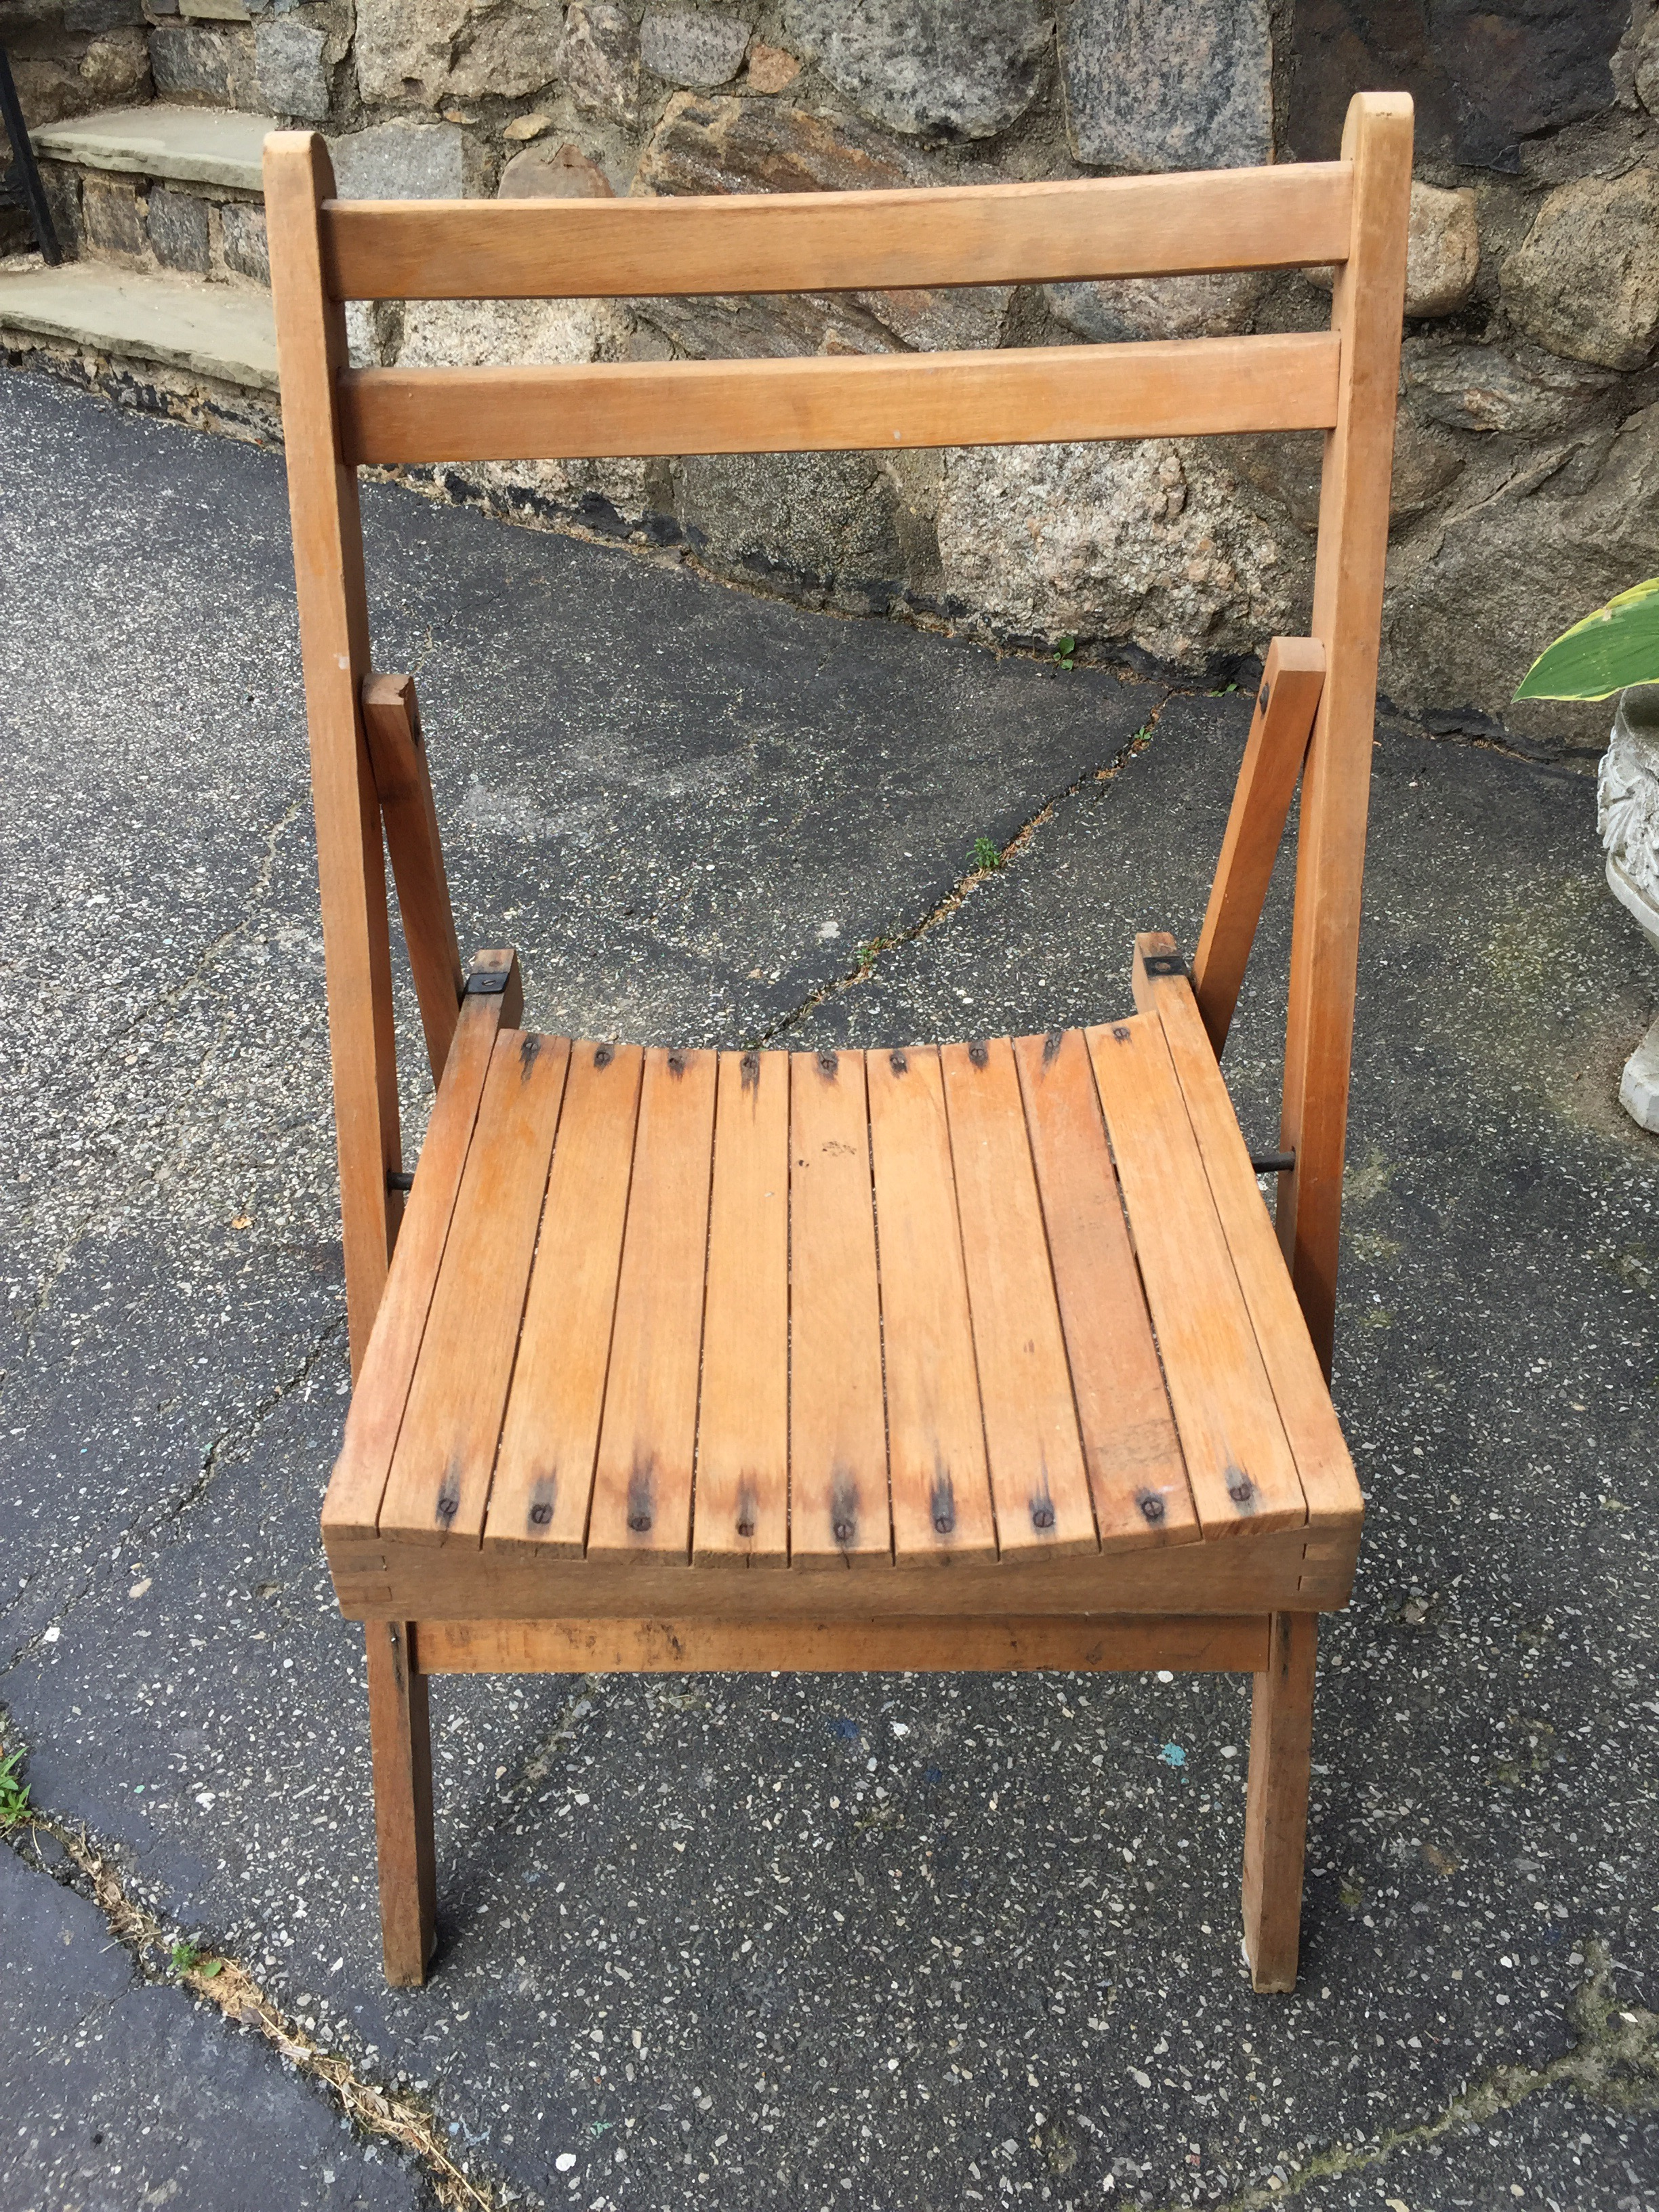 I Had A Tough Time Trying To Decide What To Makeover For This Monthu0027s  Contest. I Finally Decided To Work On These 2 Folding Chairs I Had Found On  The Curb A ...